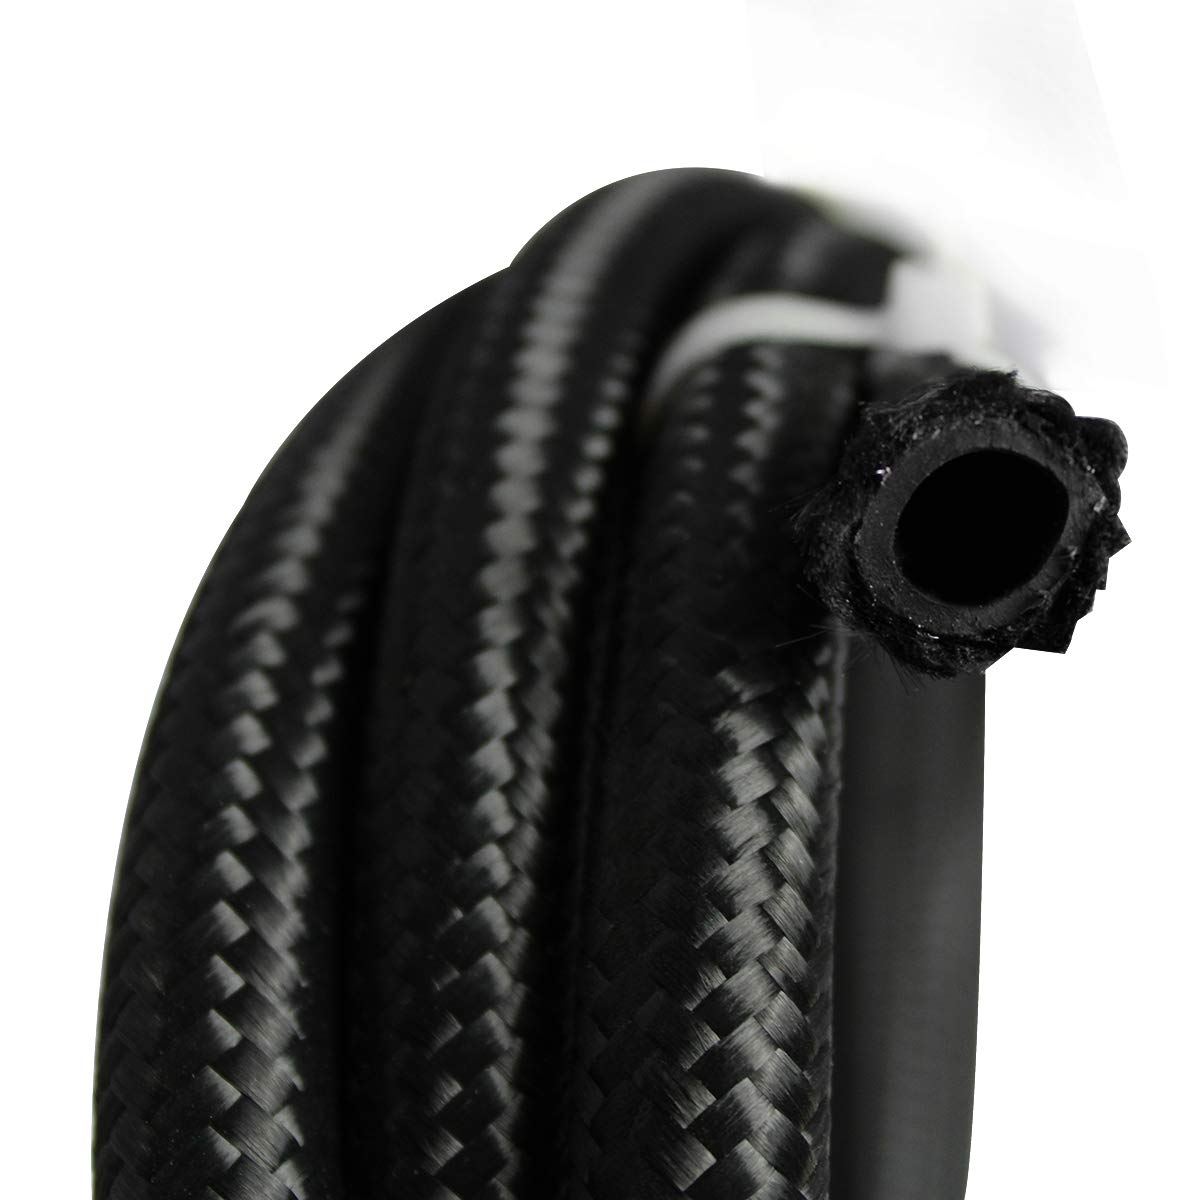 16Ft 8AN AN8 Universal Stainless Steel Braided Fuel Line Hose Ends,Black